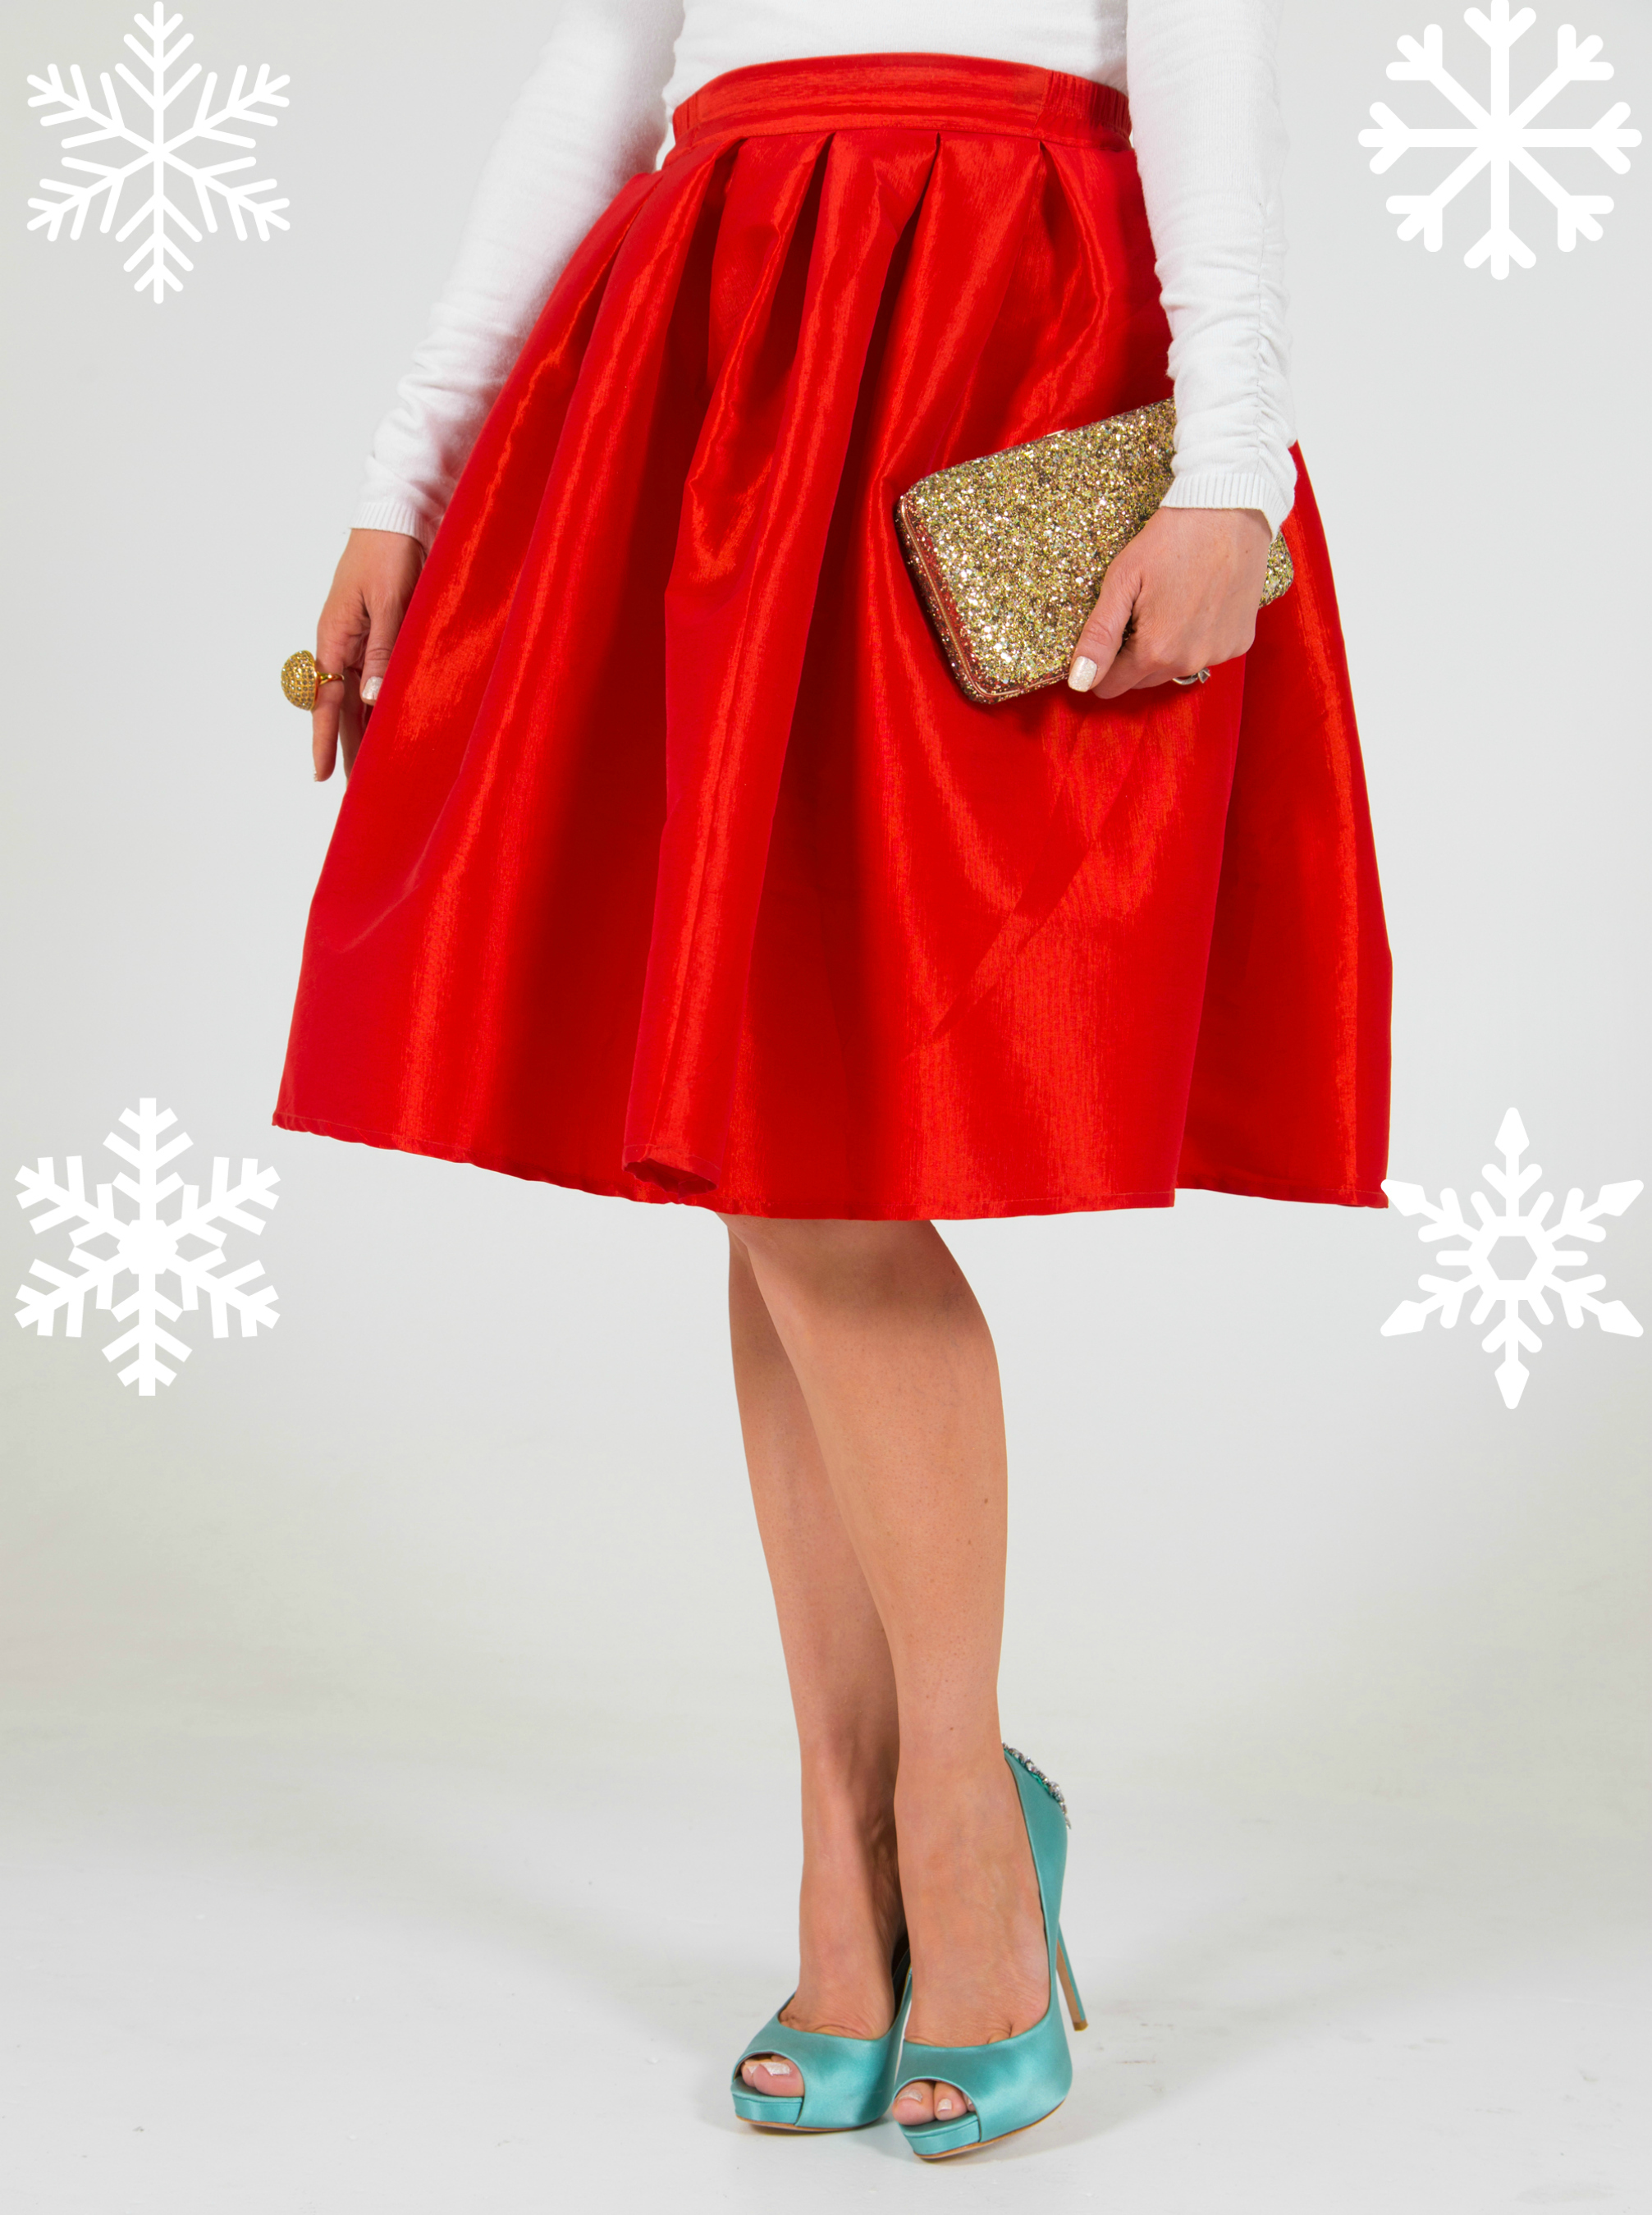 Fancy and chic Christmas holiday outfit